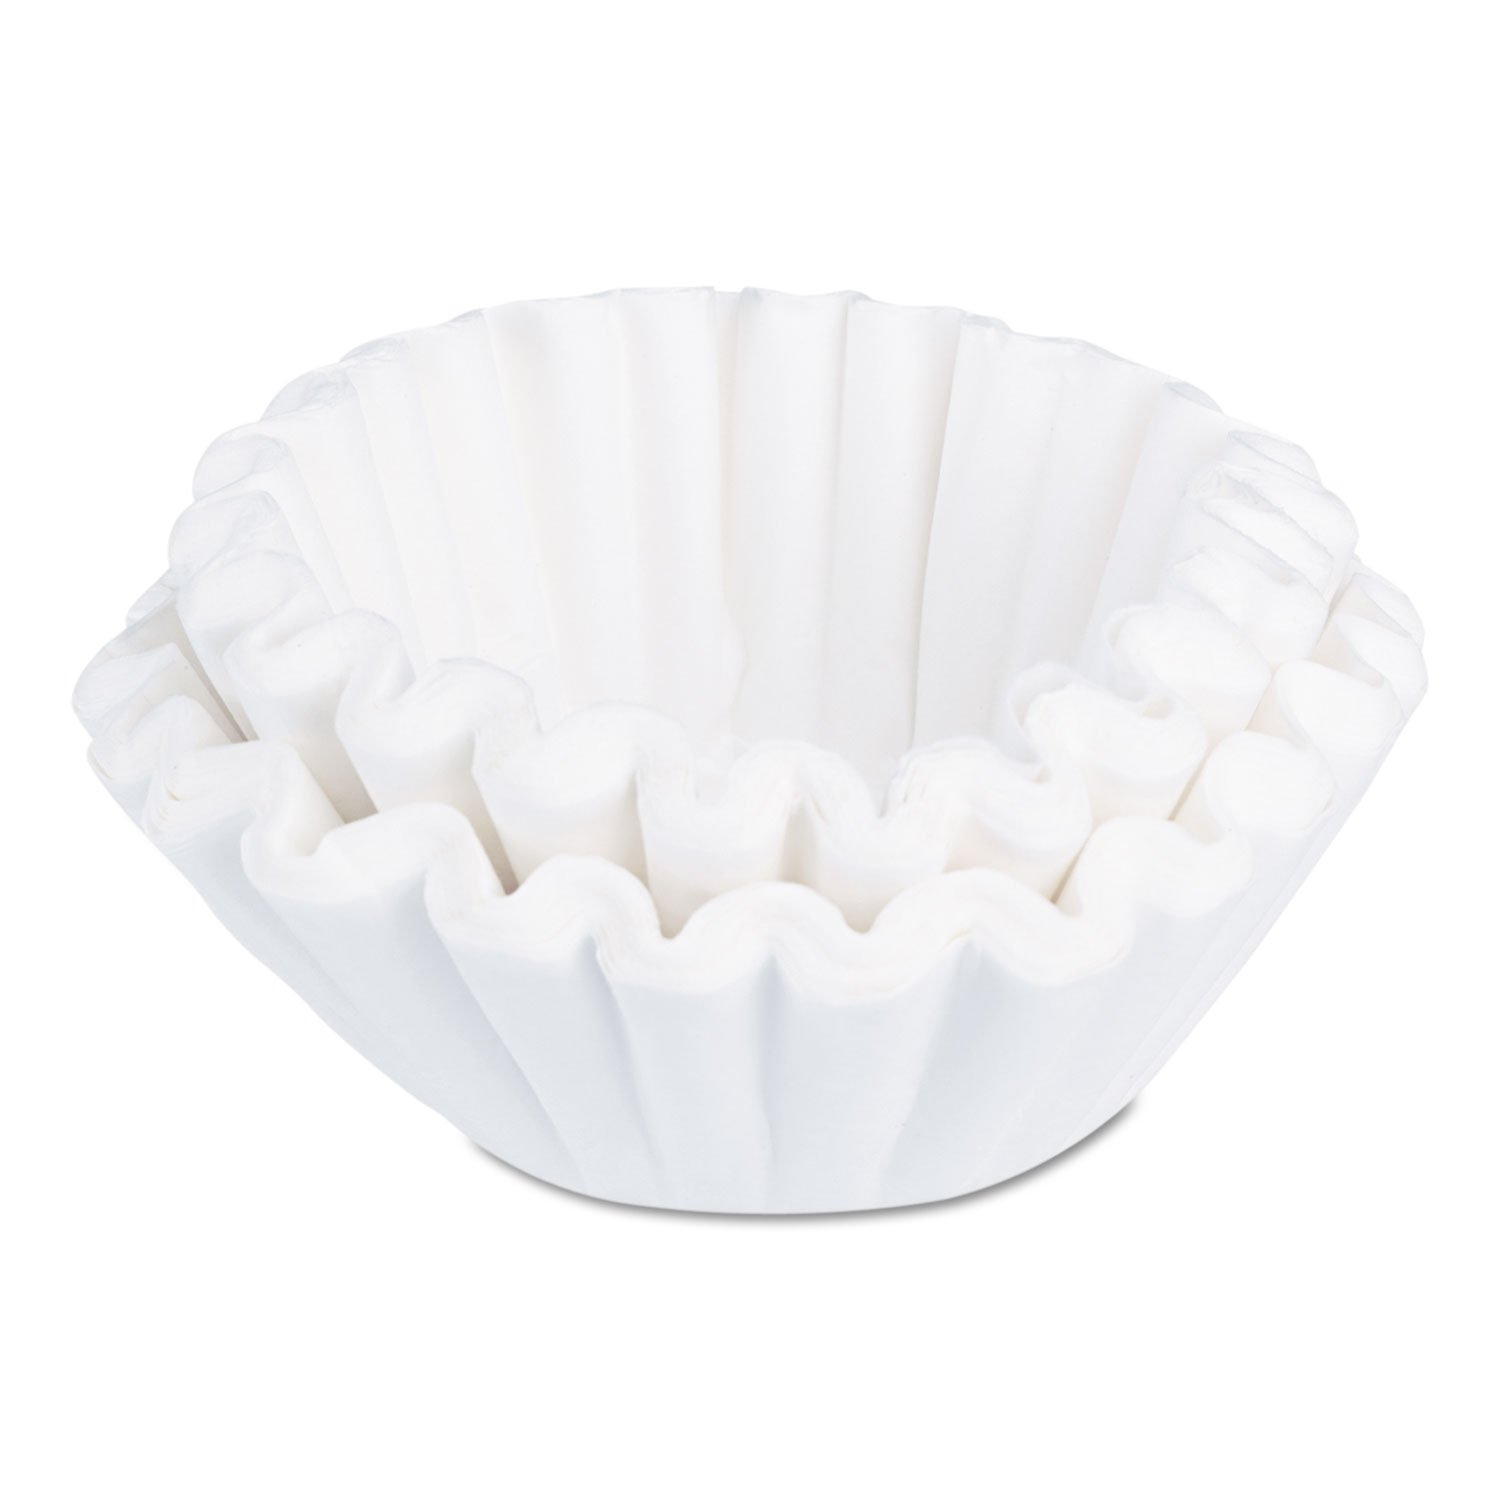 BUNN Coffee Brewer Filters, 12-Cup, Home Brewer Style - 1,000 Coffee Filters. by Bunn